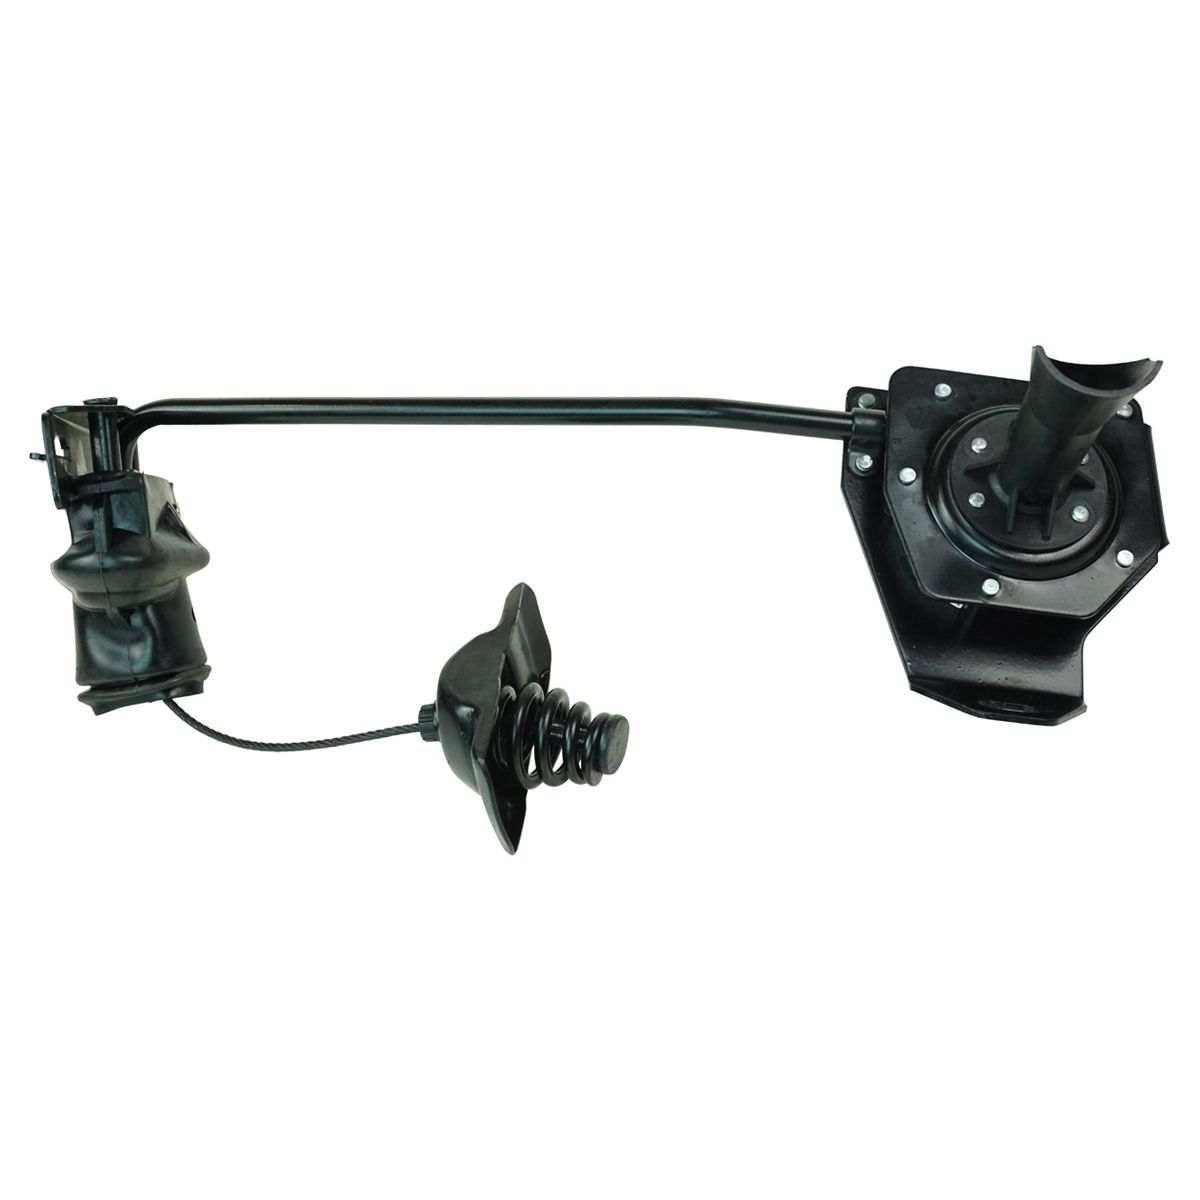 Spare Tire Hoist 924-509 25911640 for GM TRUCK SUV